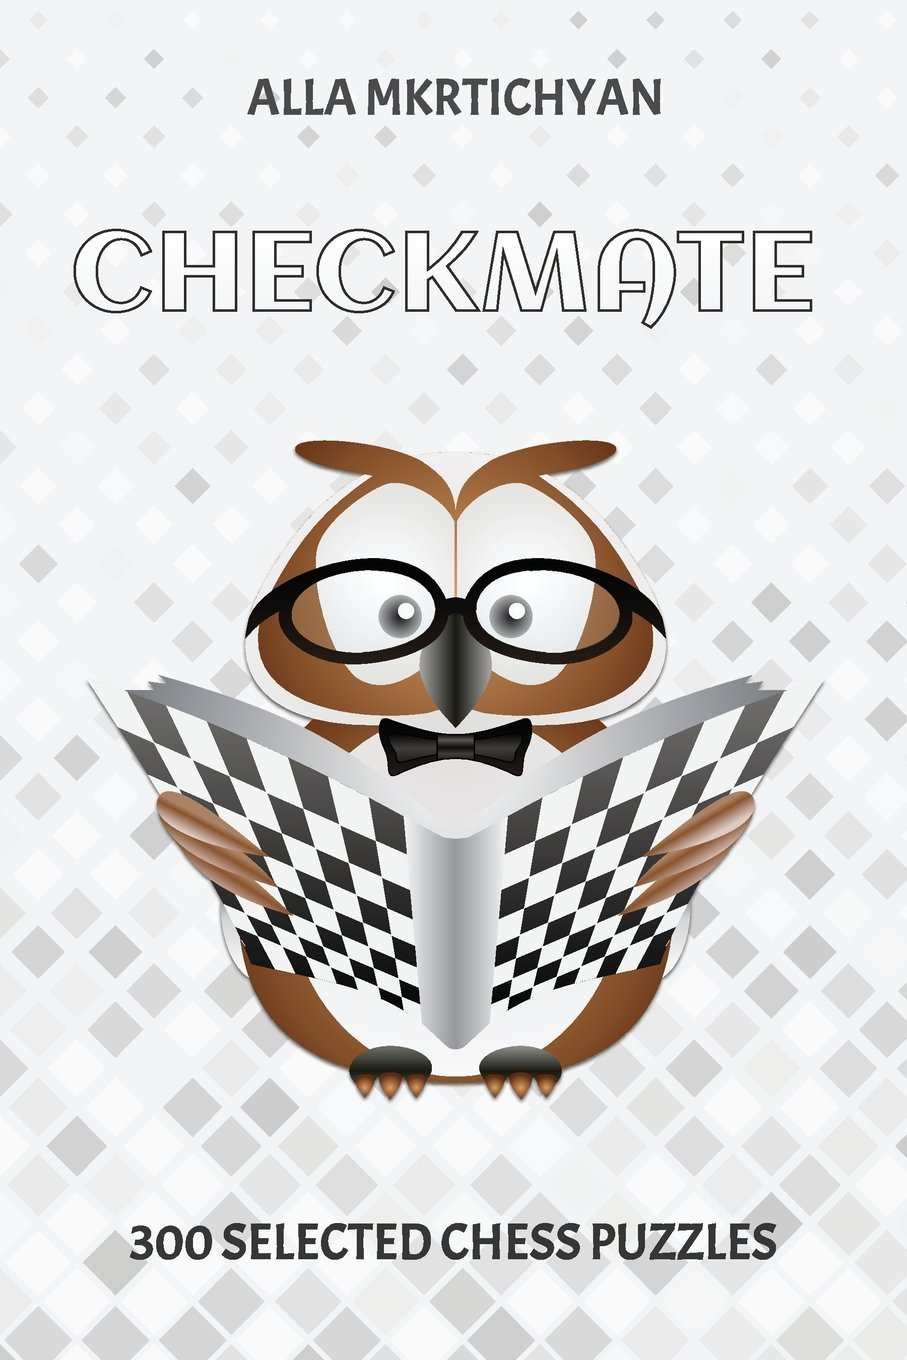 Checkmate 300 Selected Chess Puzzles Alla Mkrtichyan Diagram Puzzle From The 9781985308206 Books